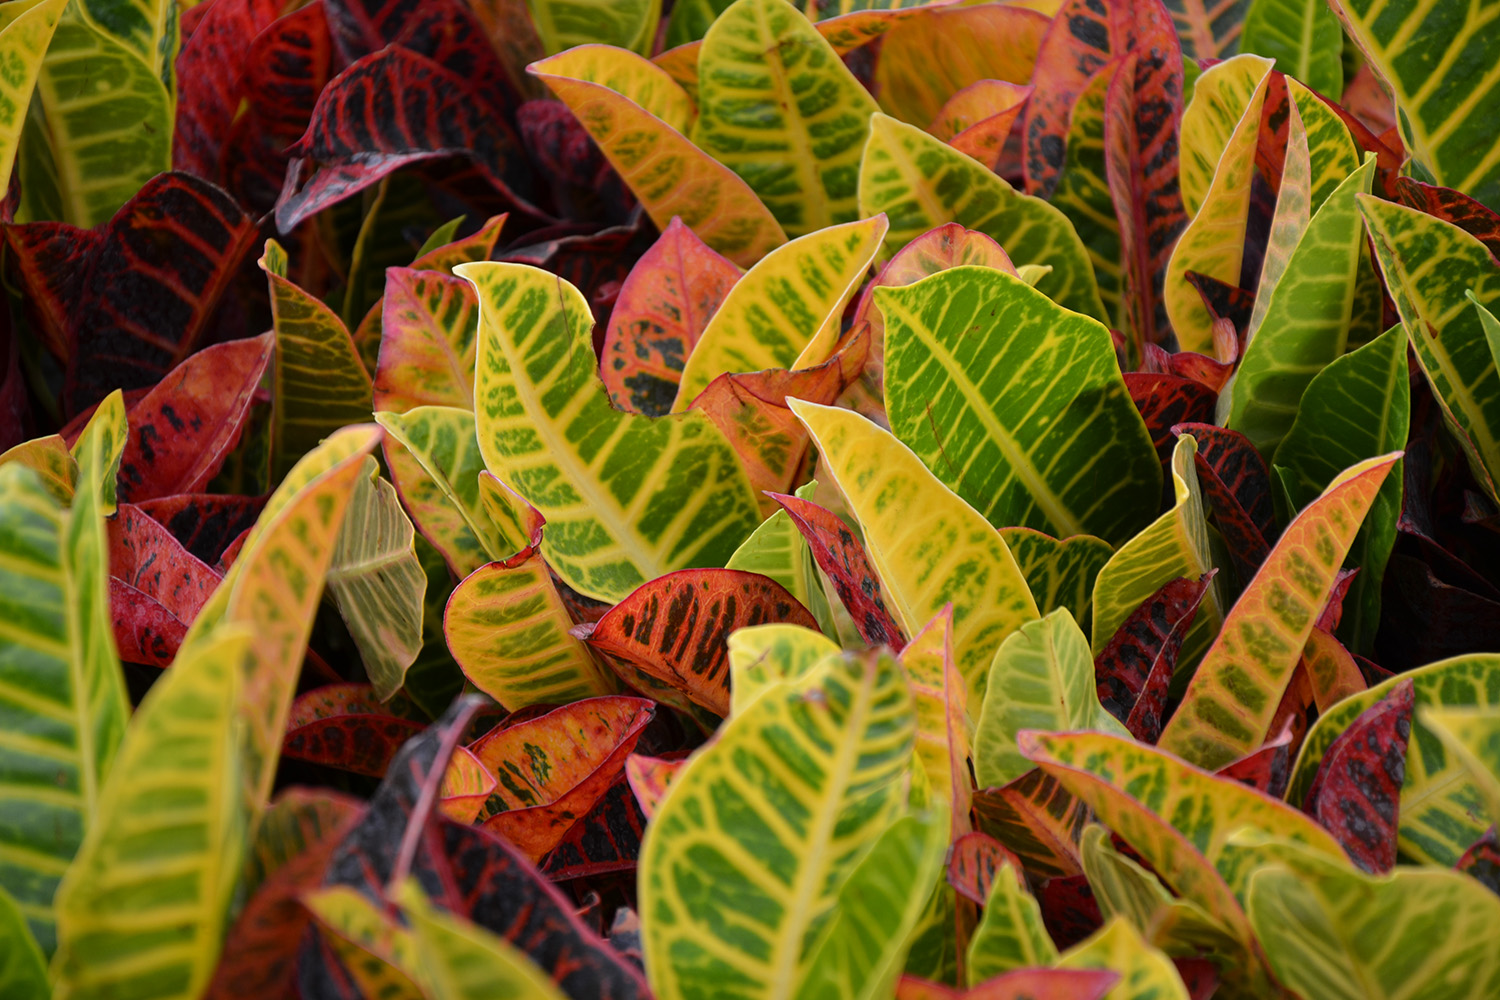 Buy Croton Houseplants at Patuxent Nursery